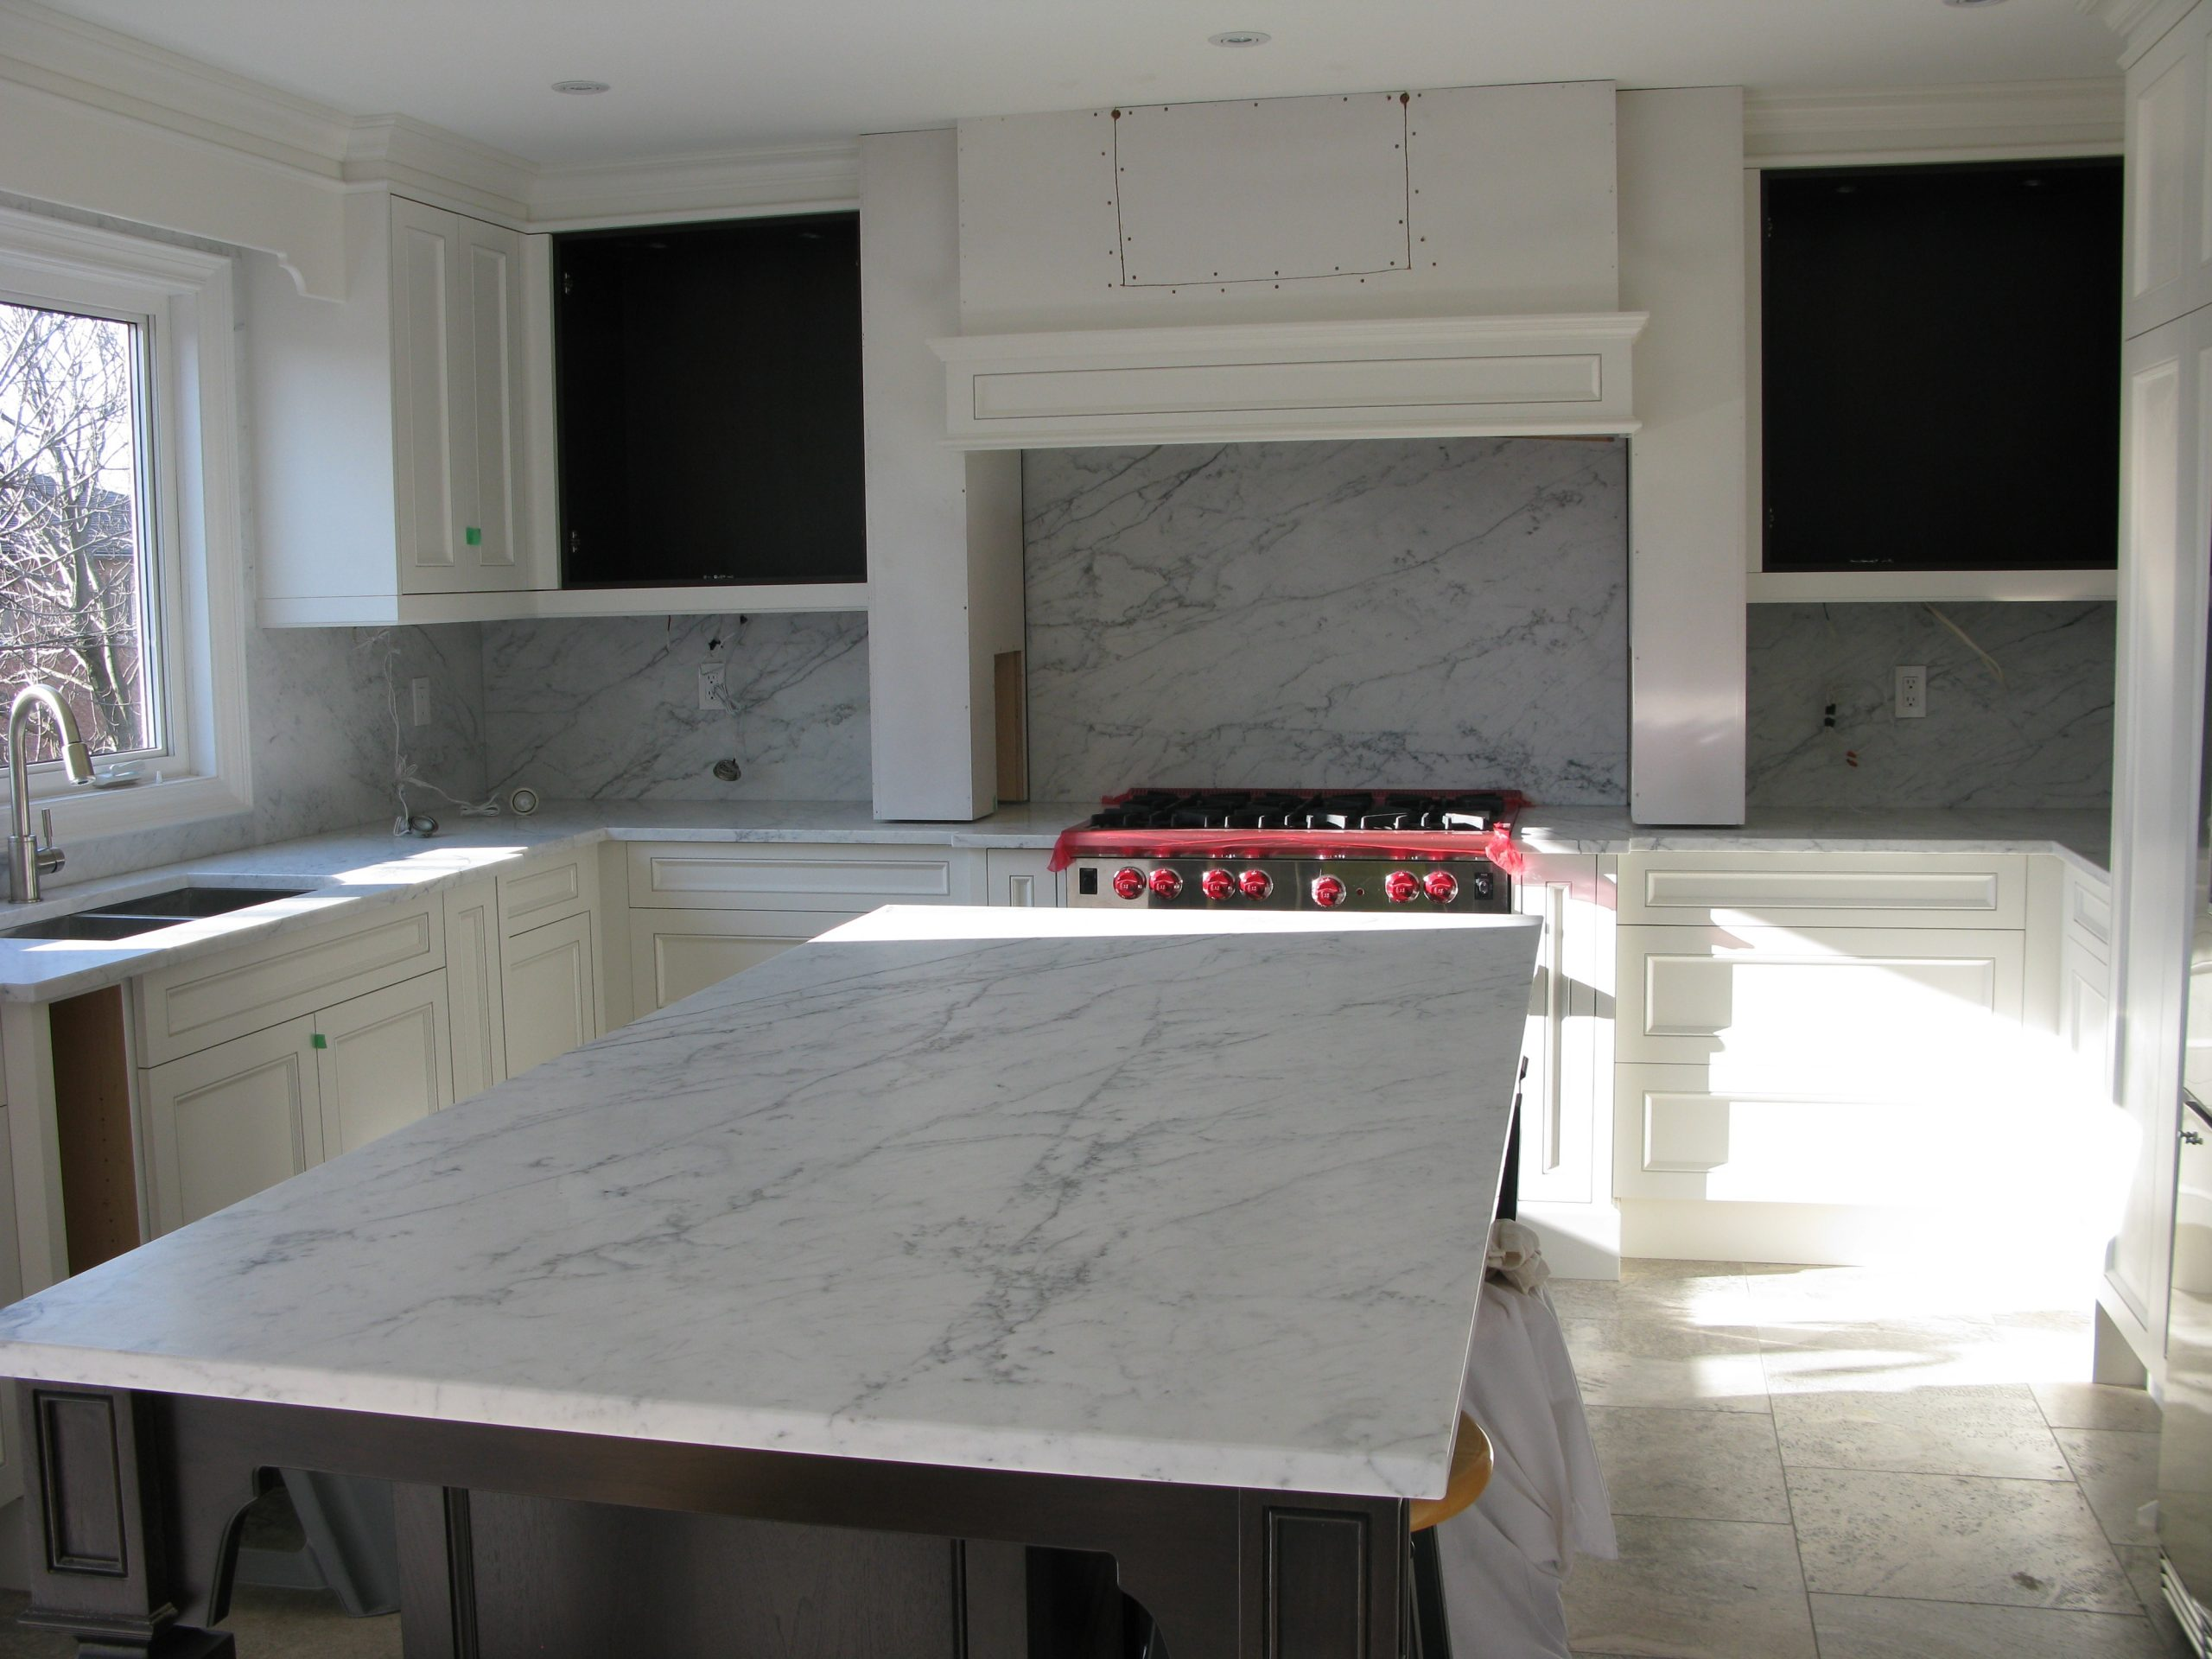 Backsplash & Island - Bianco Carrara C